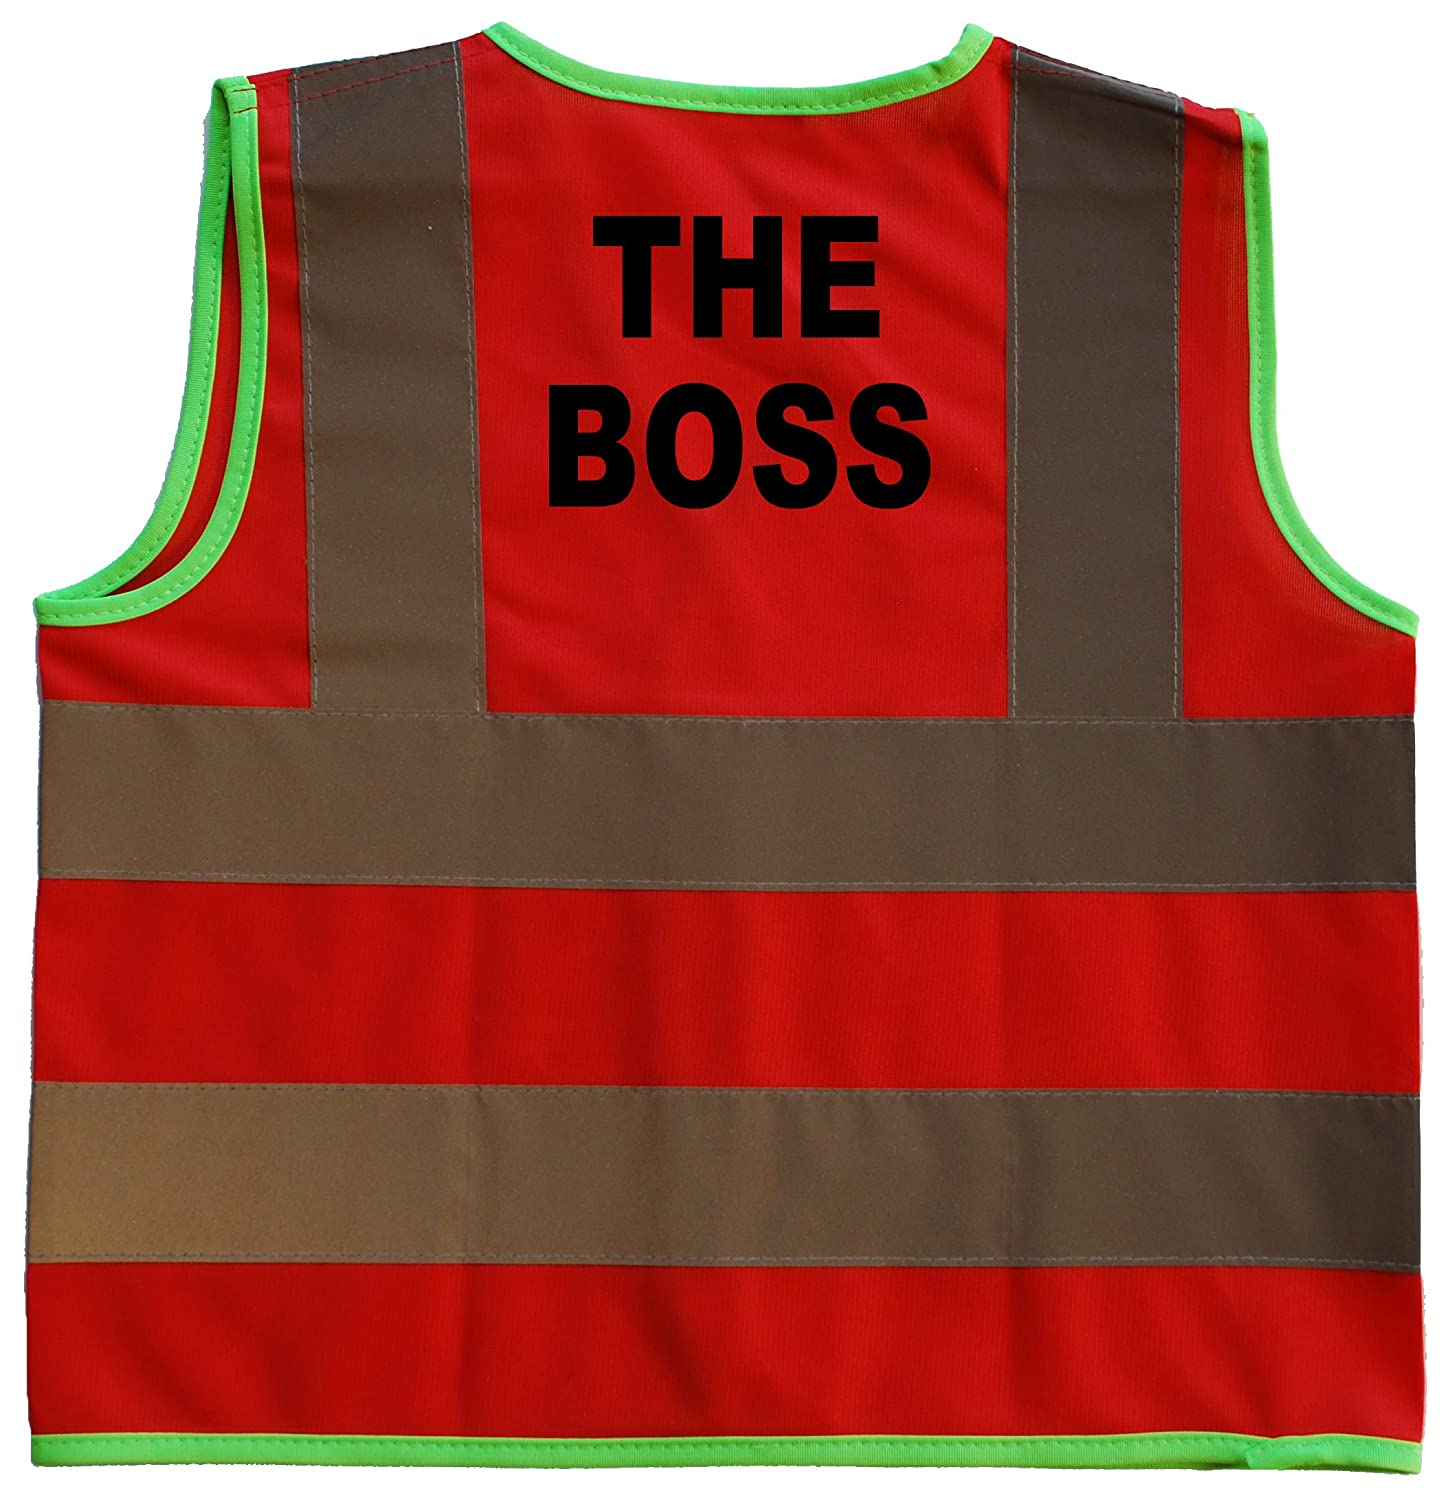 The Boss Baby/Children/Kids Hi Vis Safety Jacket/Vest Sizes 0 to 8 Years Optional Personalised On Front